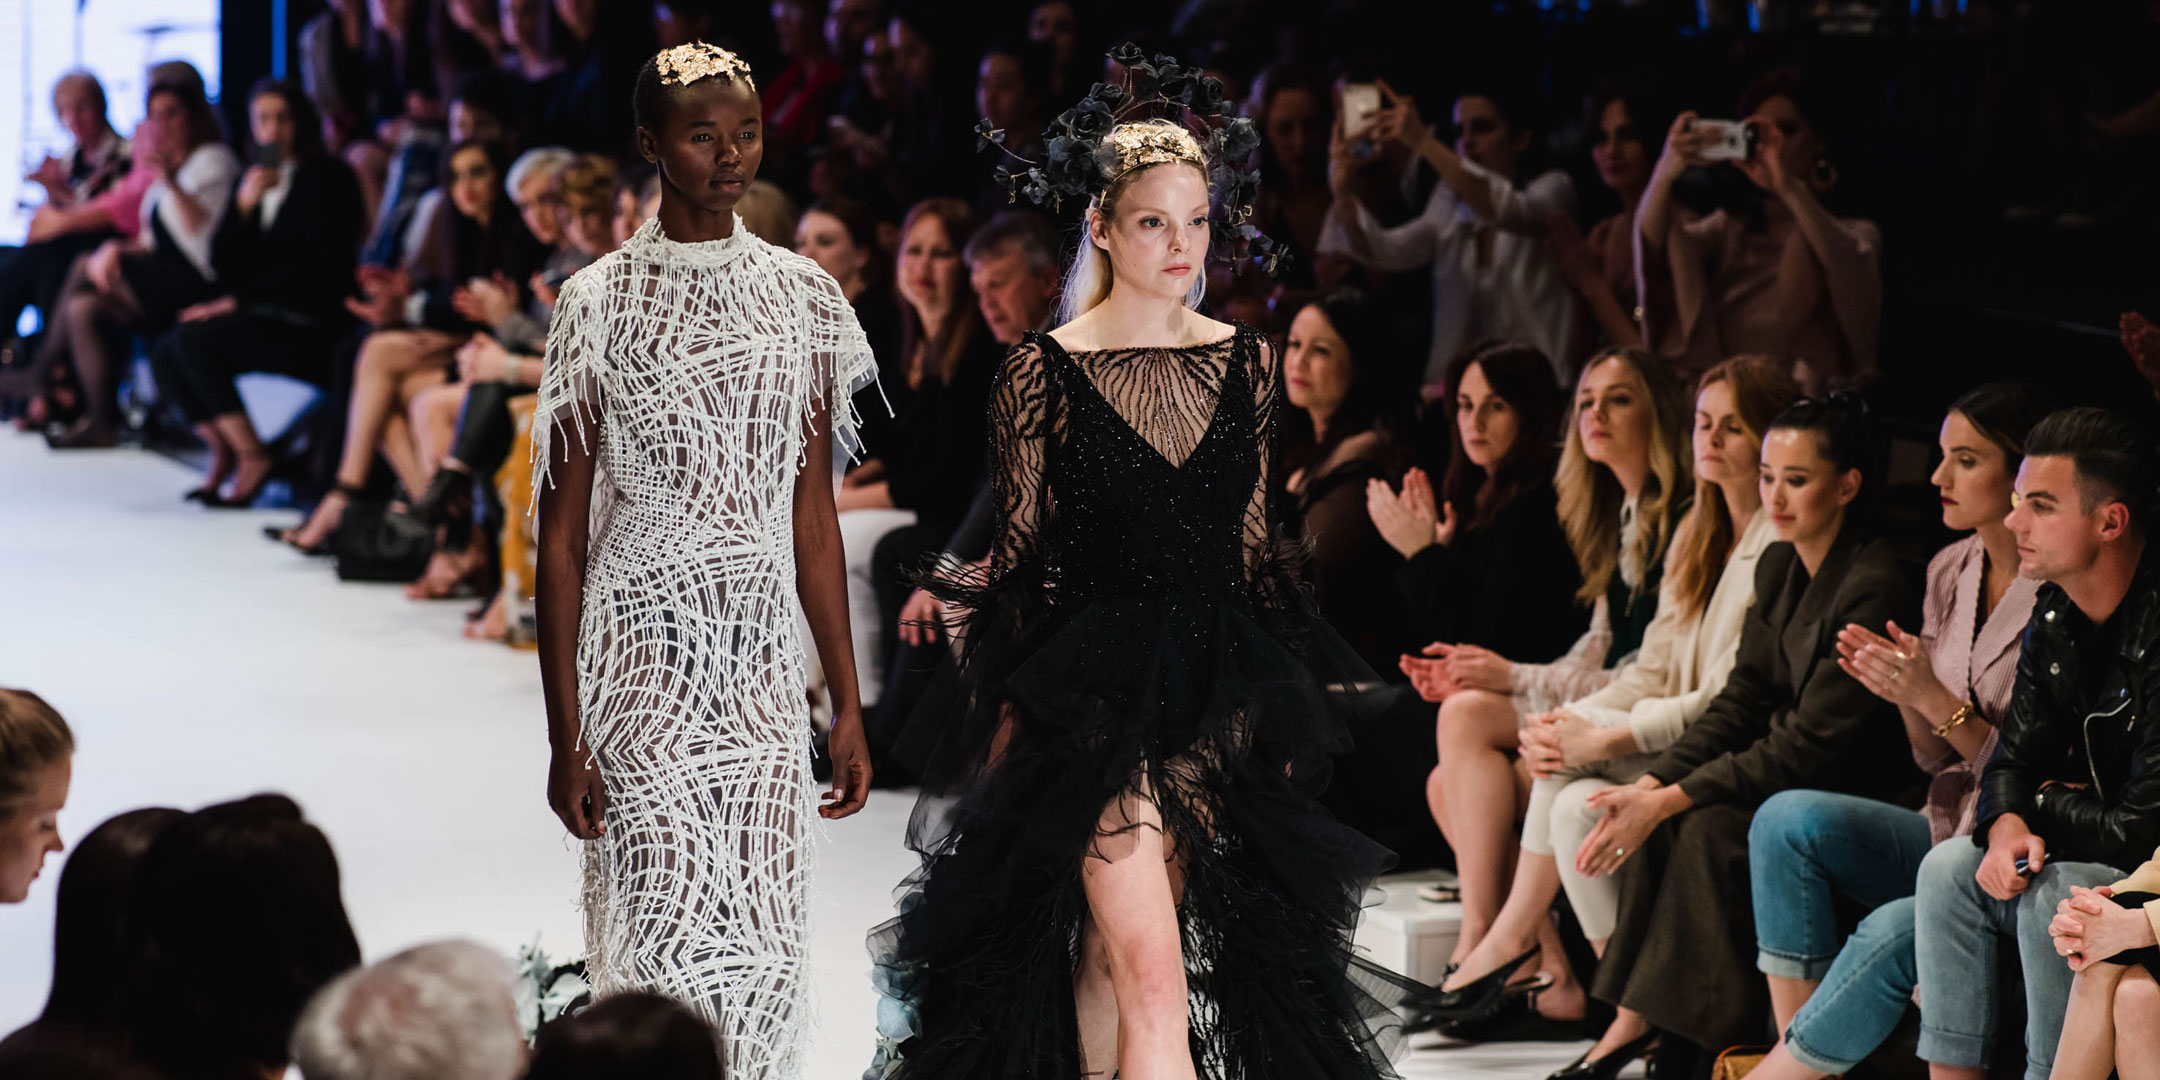 Looking For a Fashion Design Course in Singapore? Look No More